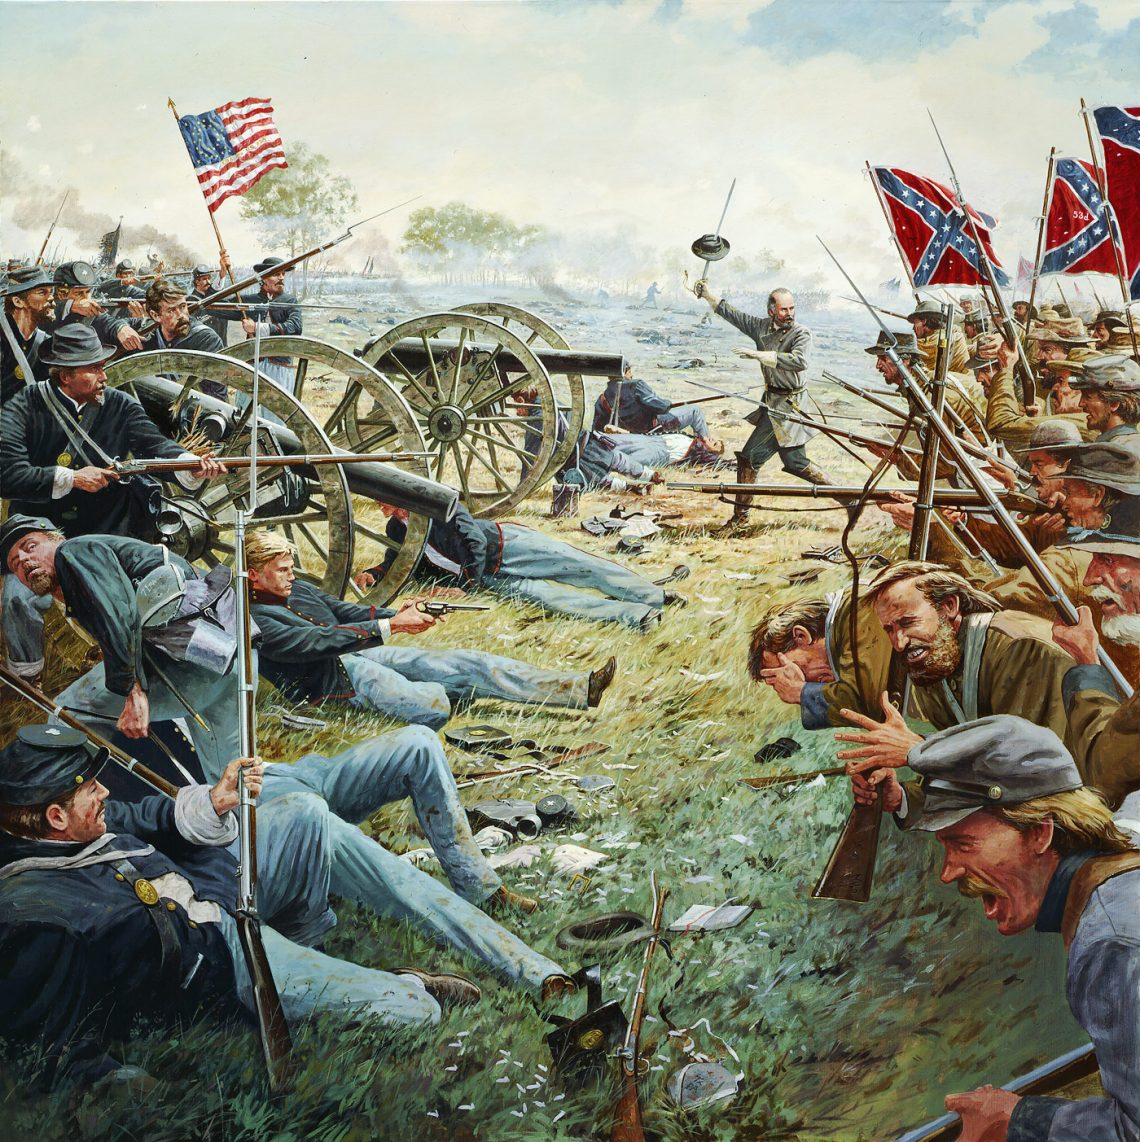 Gettysburg, PA, July 3, 1863 - Brigadier General Lewis Armistead leading the heroic and tragic moments of Pickett's Charge at the High Water Mark.